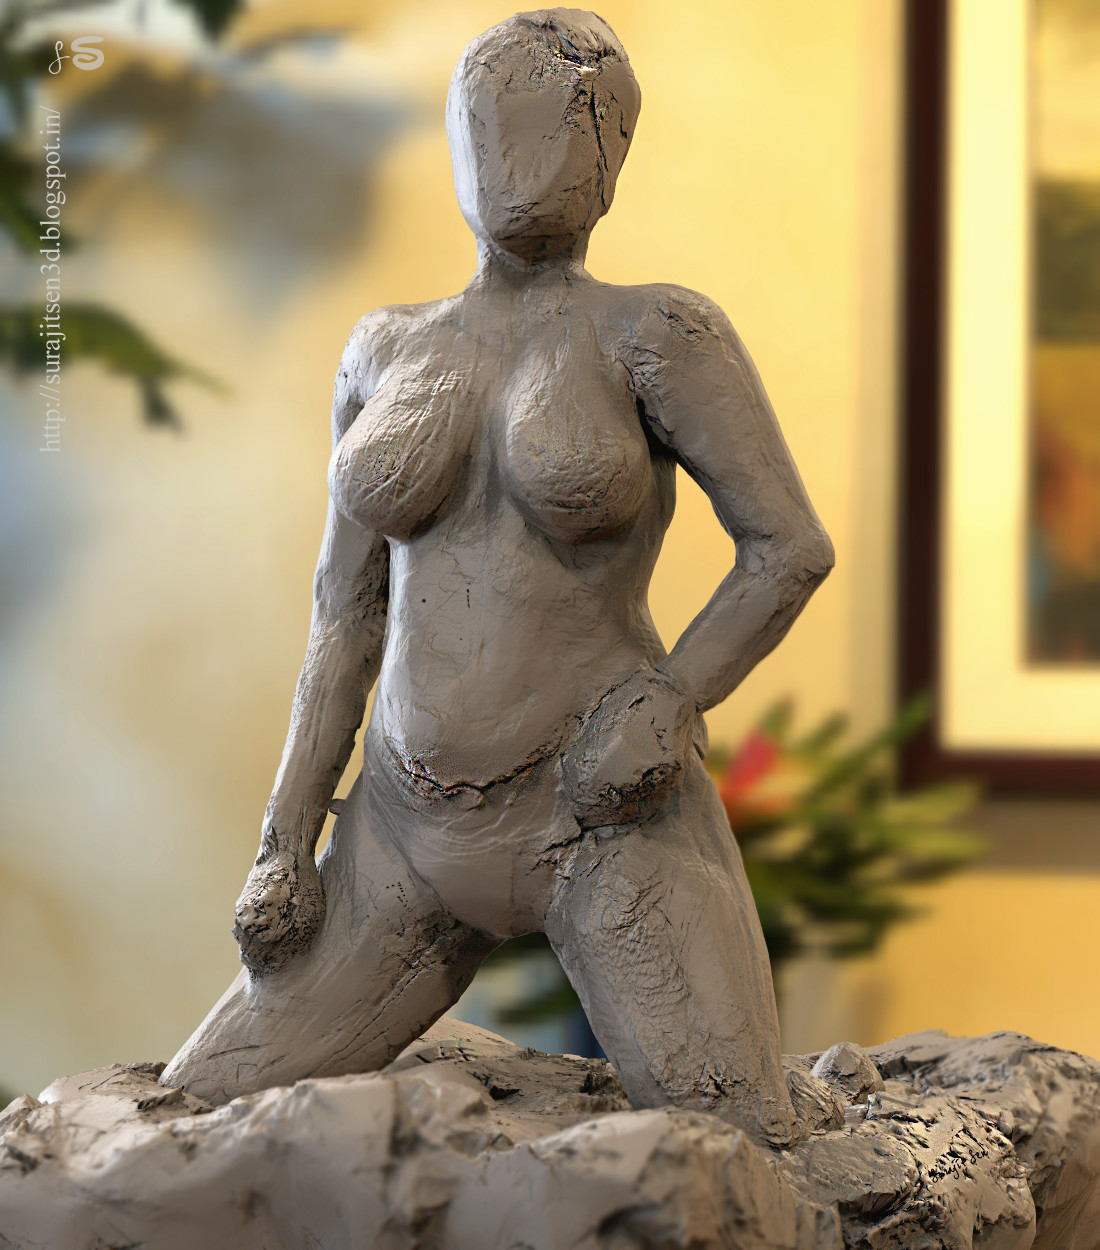 """#roughsculpt #quicksculpt #study   One of my quick sculpt study......""""The Posing"""". Wish to share."""